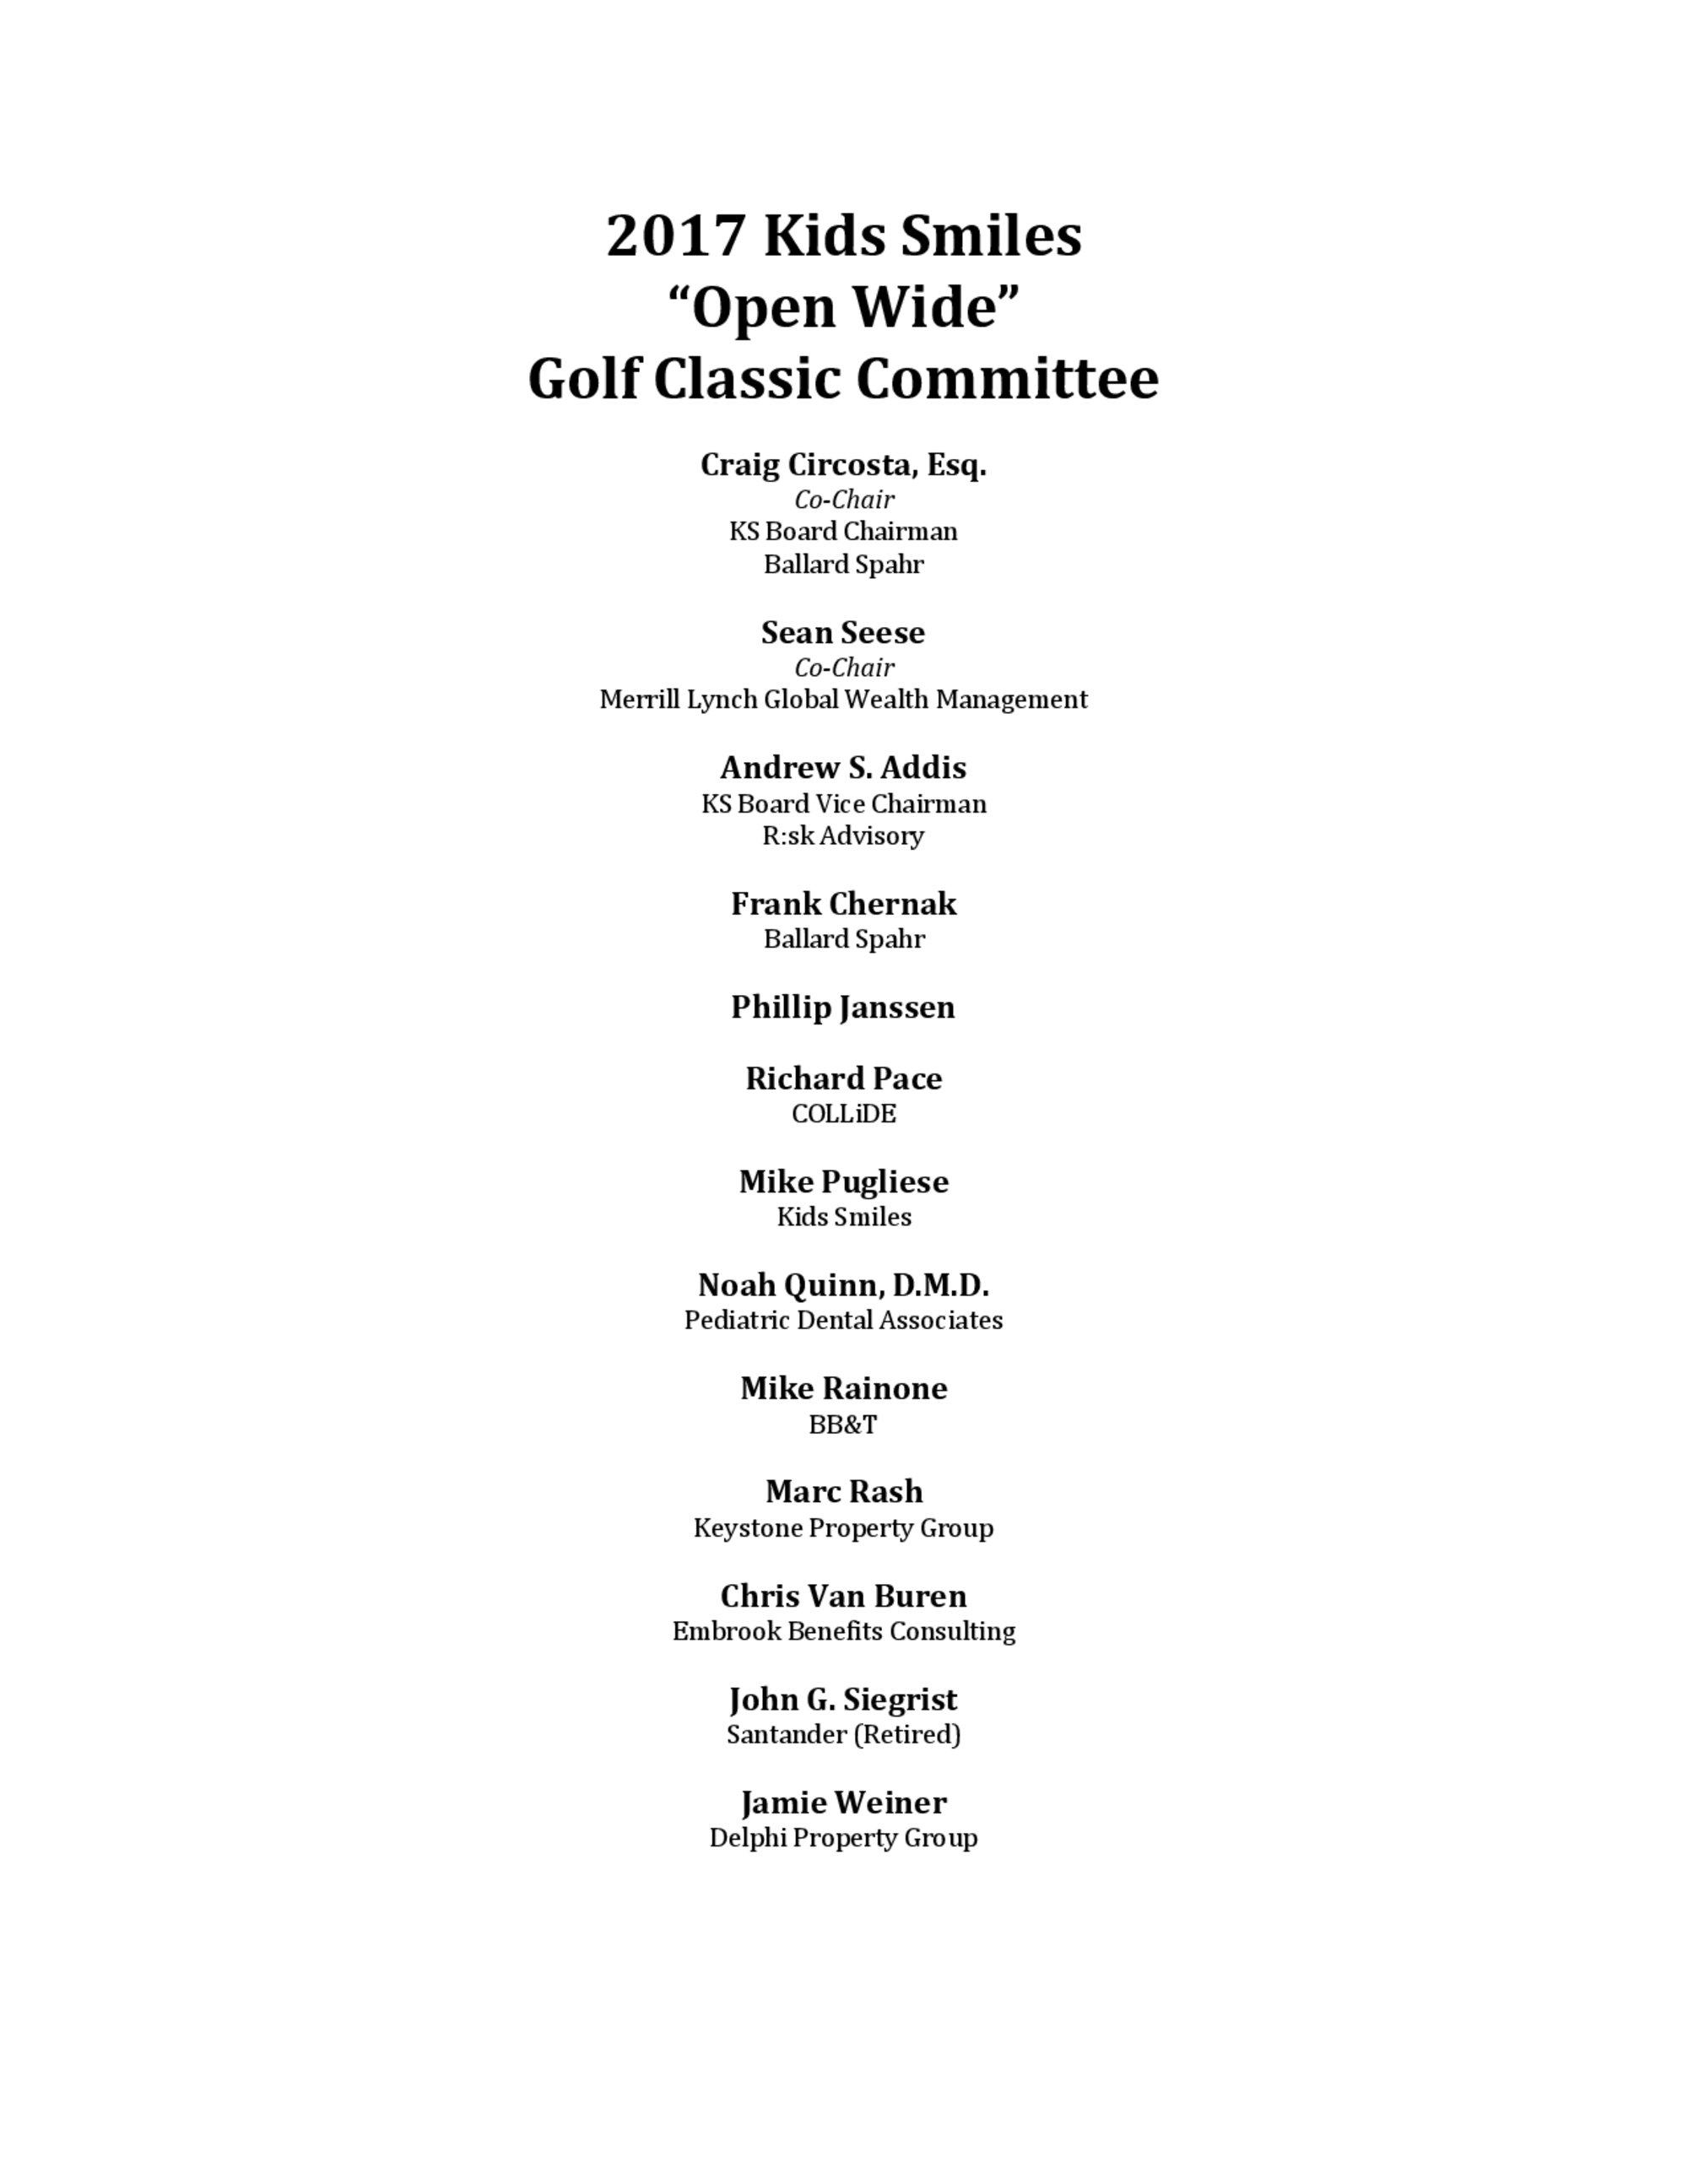 2017 golf committee 1